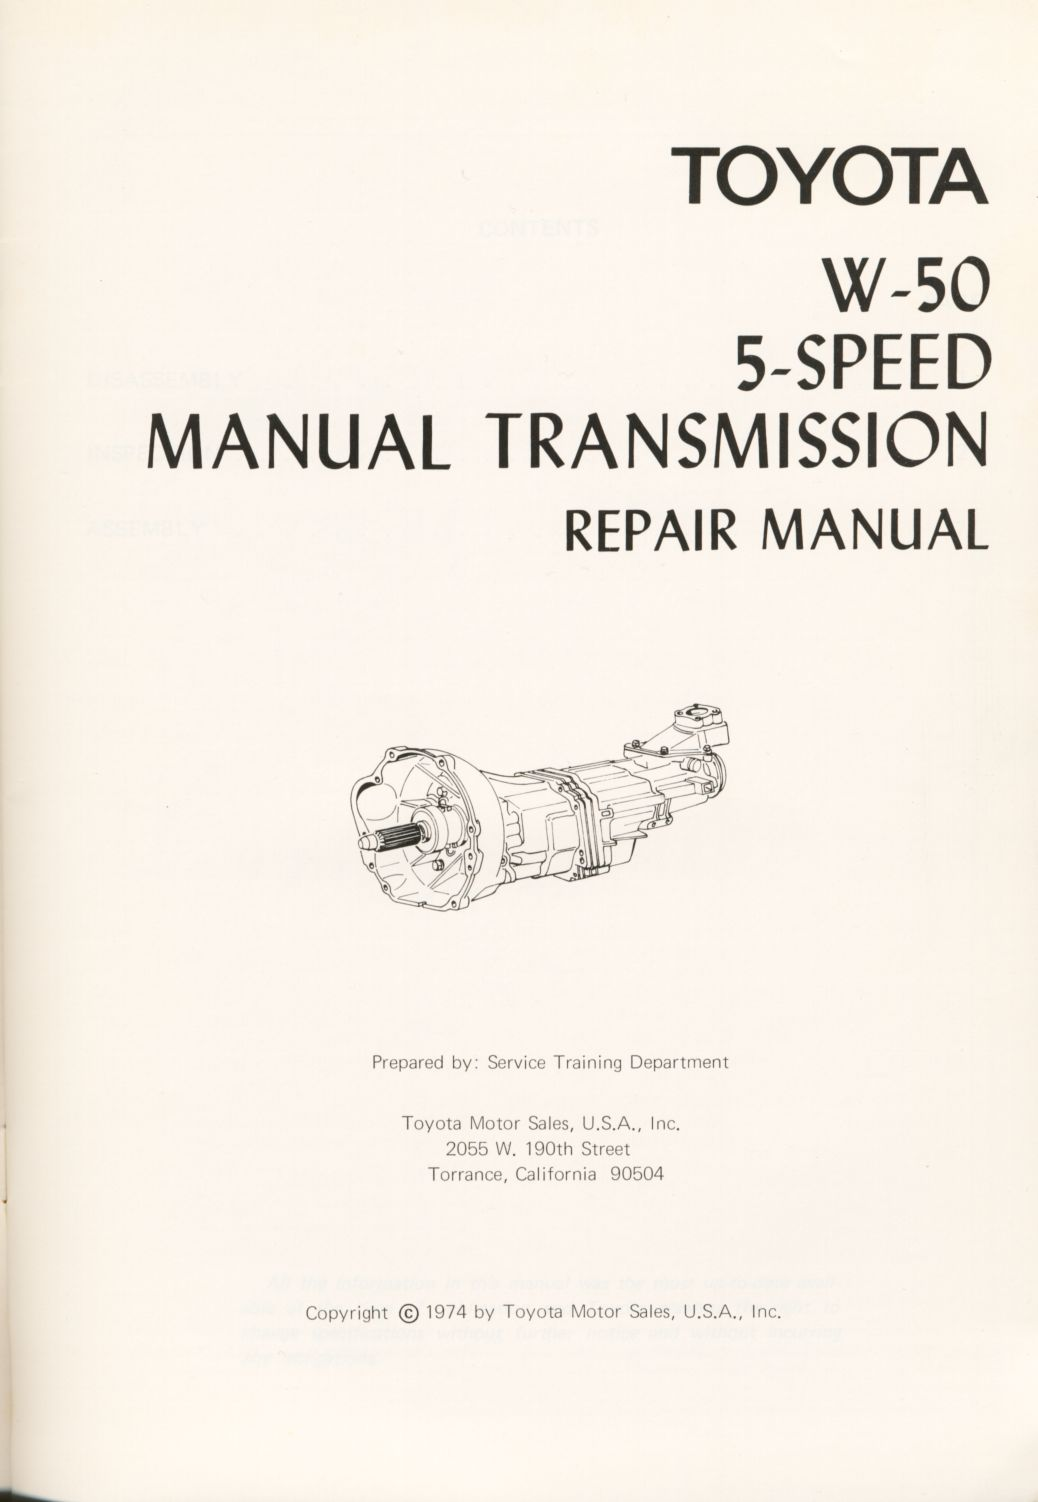 index of stepho manuals toyota gearbox w50 rh members iinet net au toyota cvt transmission repair manual pdf toyota k410 transmission repair manual